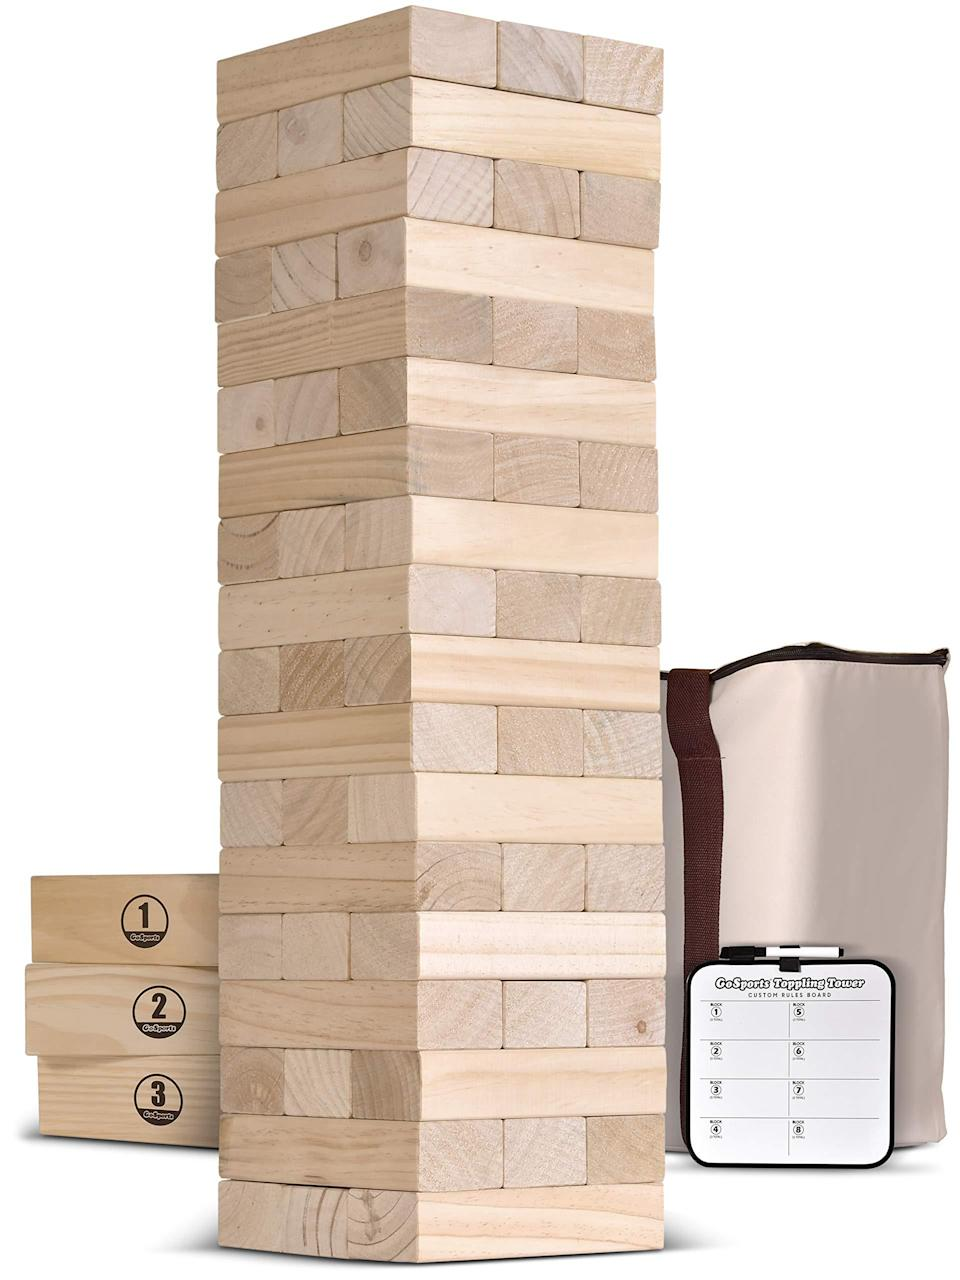 "<h3><a href=""https://amzn.to/3948WgM"" rel=""nofollow noopener"" target=""_blank"" data-ylk=""slk:GoSports Wooden Toppling Tower"" class=""link rapid-noclick-resp"">GoSports Wooden Toppling Tower</a></h3> <br>This five-foot twist on a childhood classic packs up seamlessly in a convenient carrying case so you can take your game on-the-go to the beach, the BBQ, the park, and beyond. <br><br><strong>GoSports</strong> Wooden Toppling Tower, $, available at <a href=""https://amzn.to/2WoRXRn"" rel=""nofollow noopener"" target=""_blank"" data-ylk=""slk:Amazon"" class=""link rapid-noclick-resp"">Amazon</a><br>"